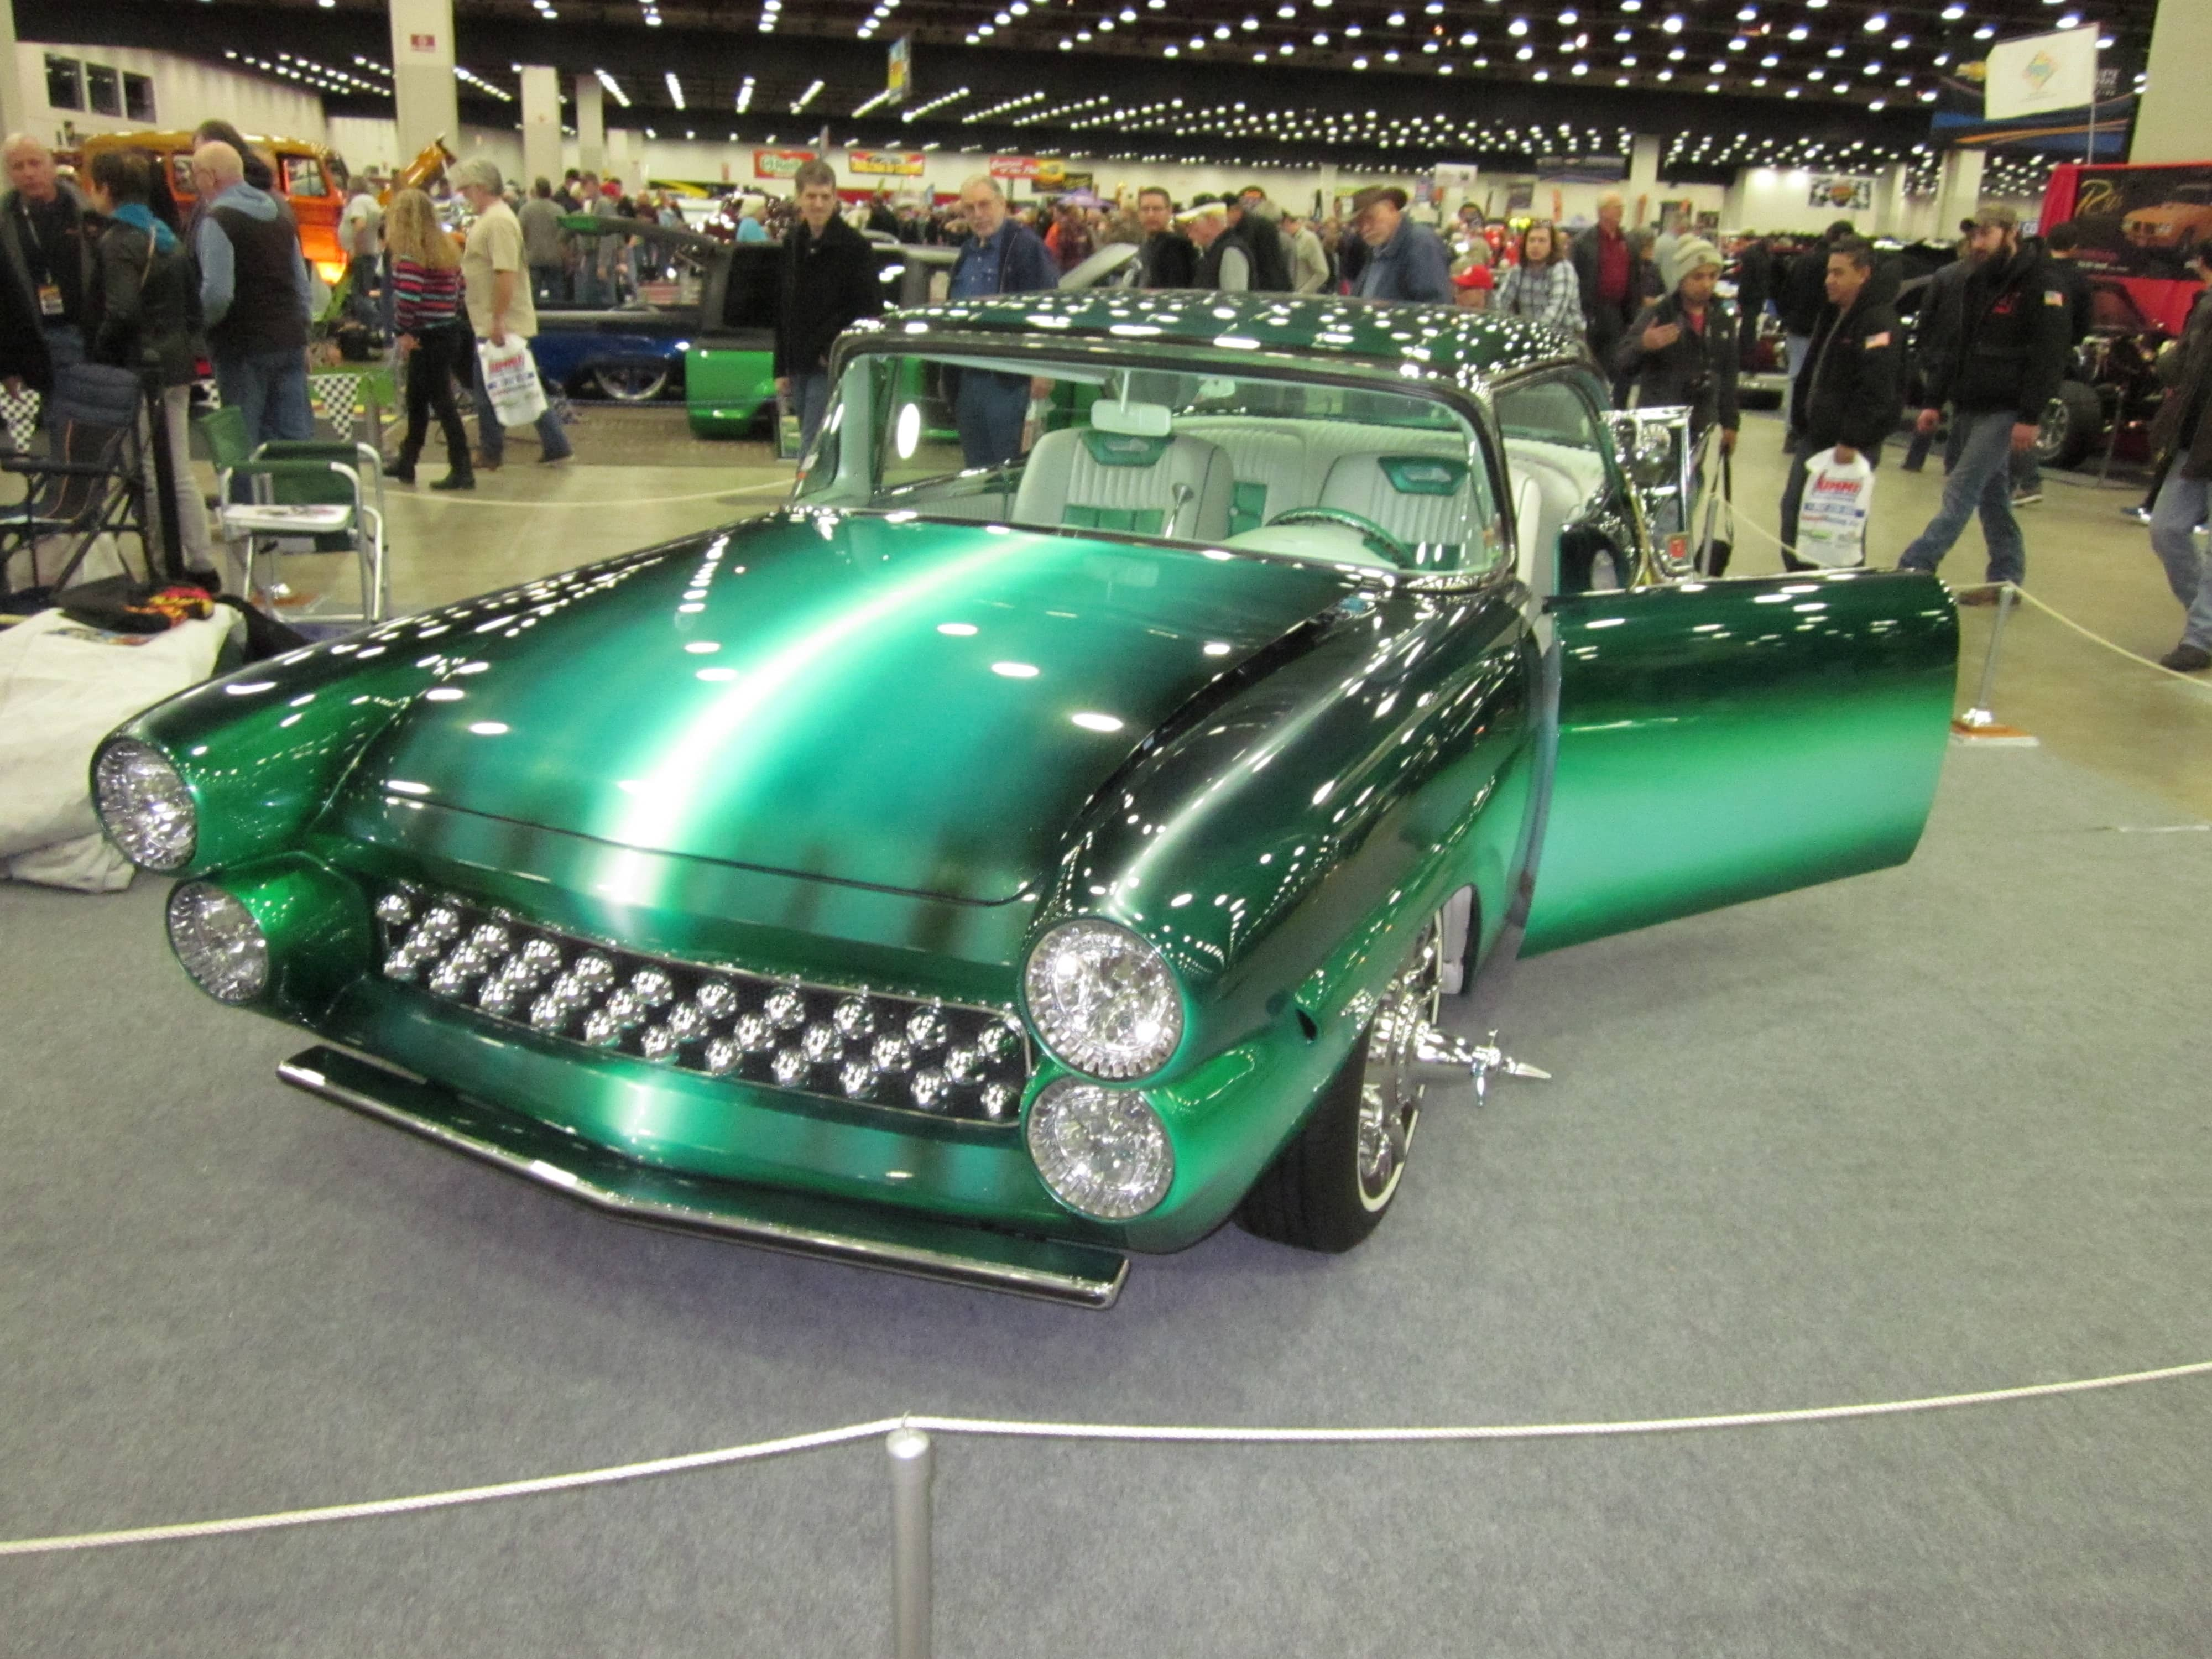 Detroit Autorama 2016: Hot Rods, Customs and Classics at Cobo